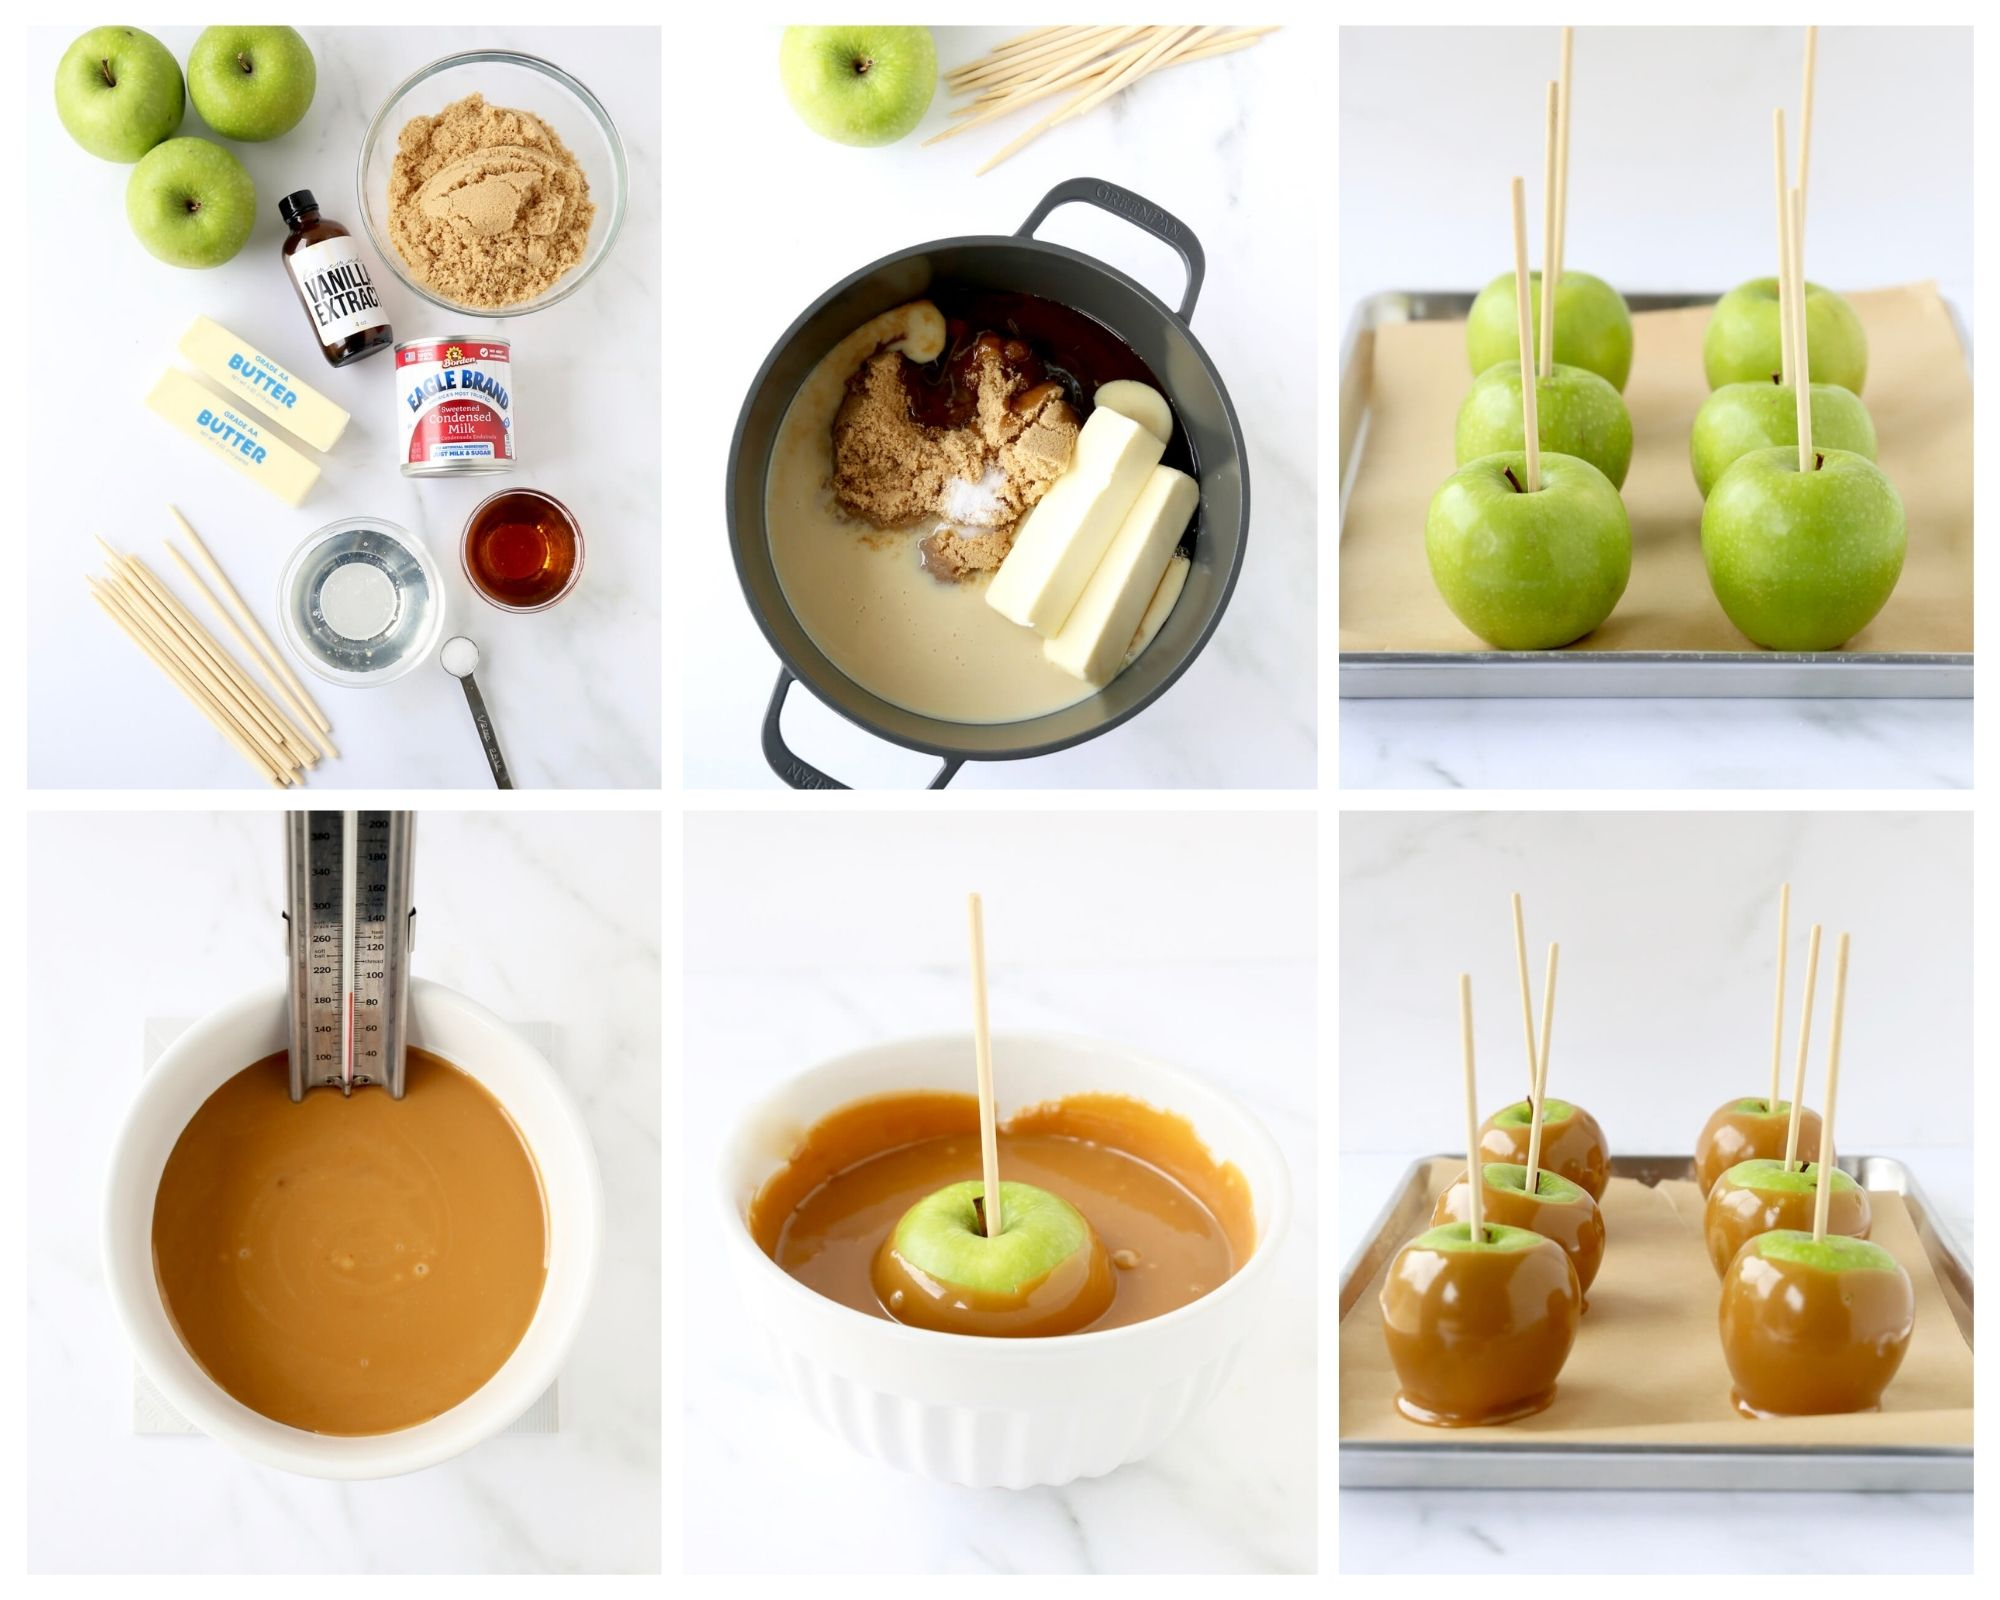 6 photos showing the step by step process of making caramel apples